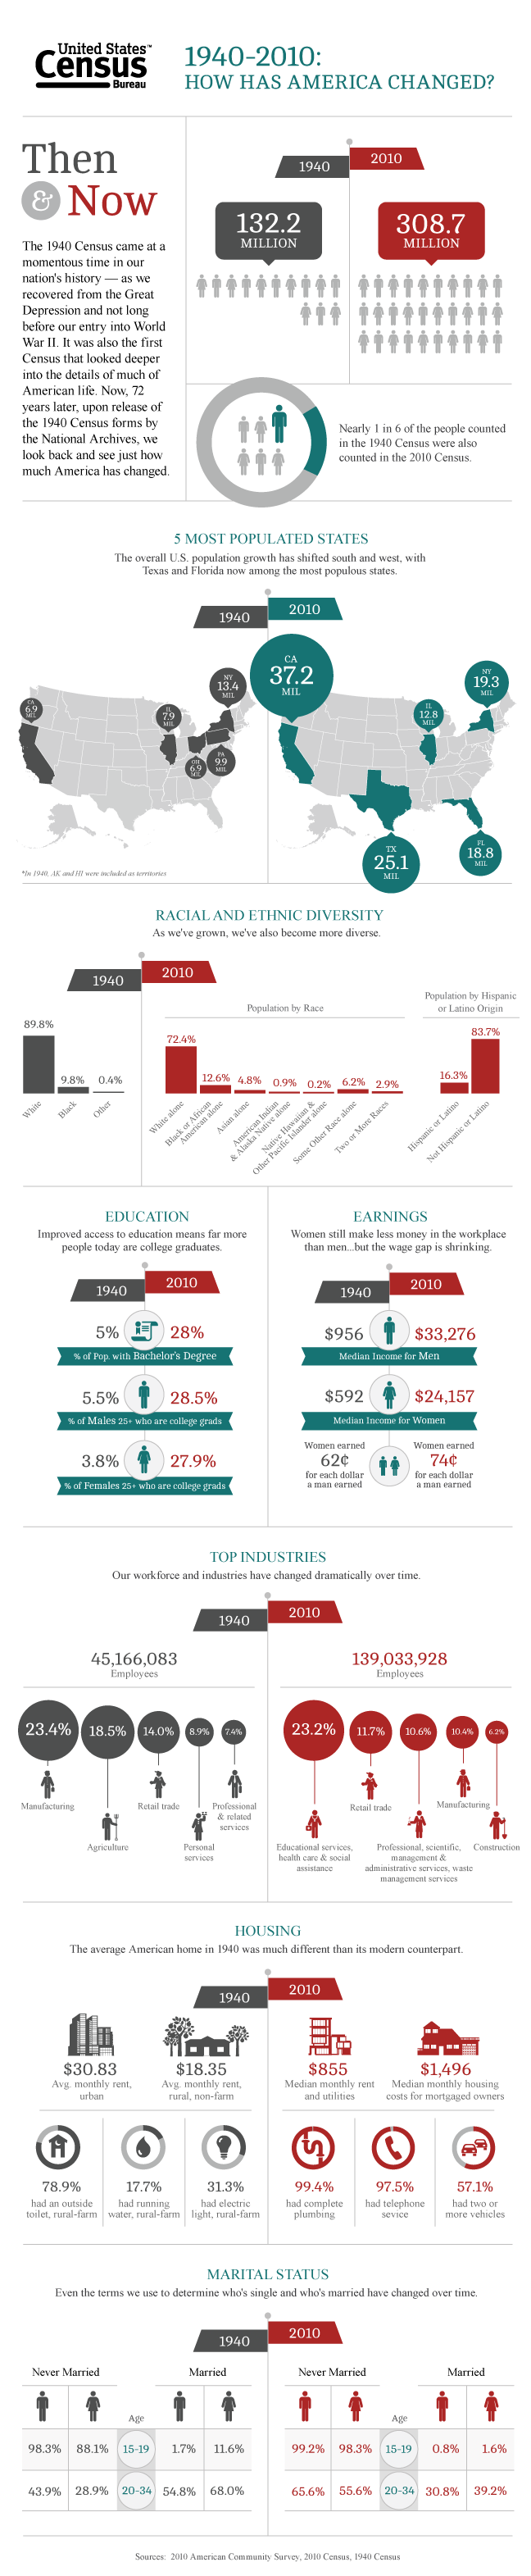 U.S. Census Bureau Infographic Comparing 1940 to 2010